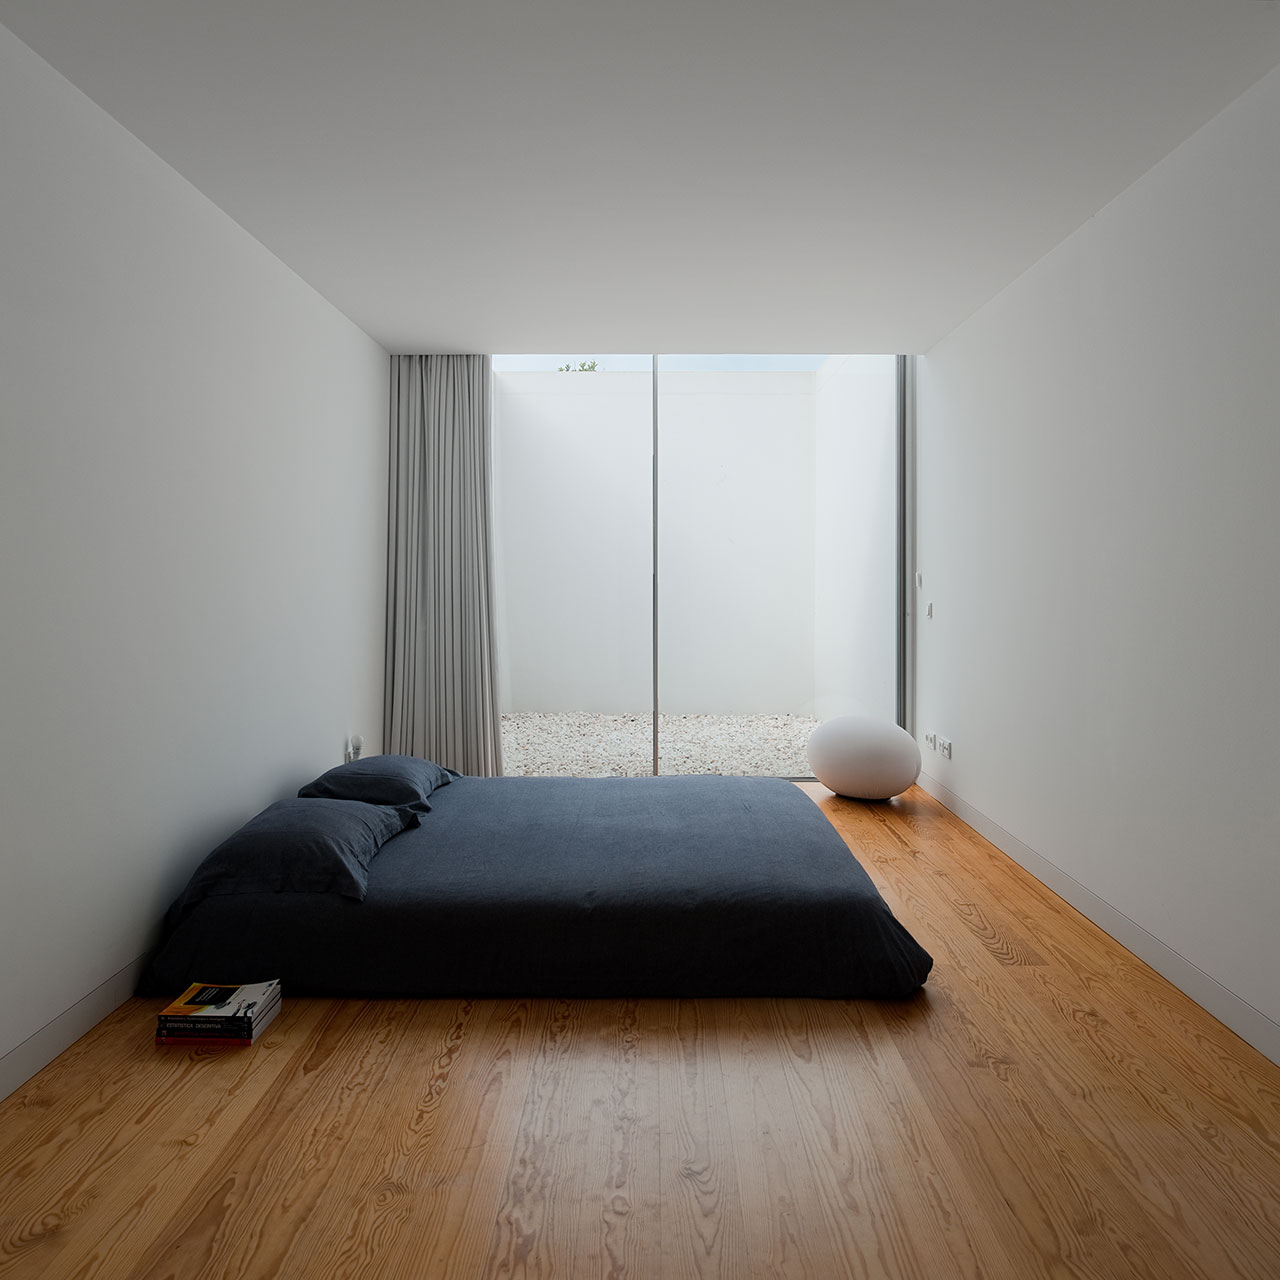 Cover and concealment house in leiria by aires mateus for Minimalist apartment decor